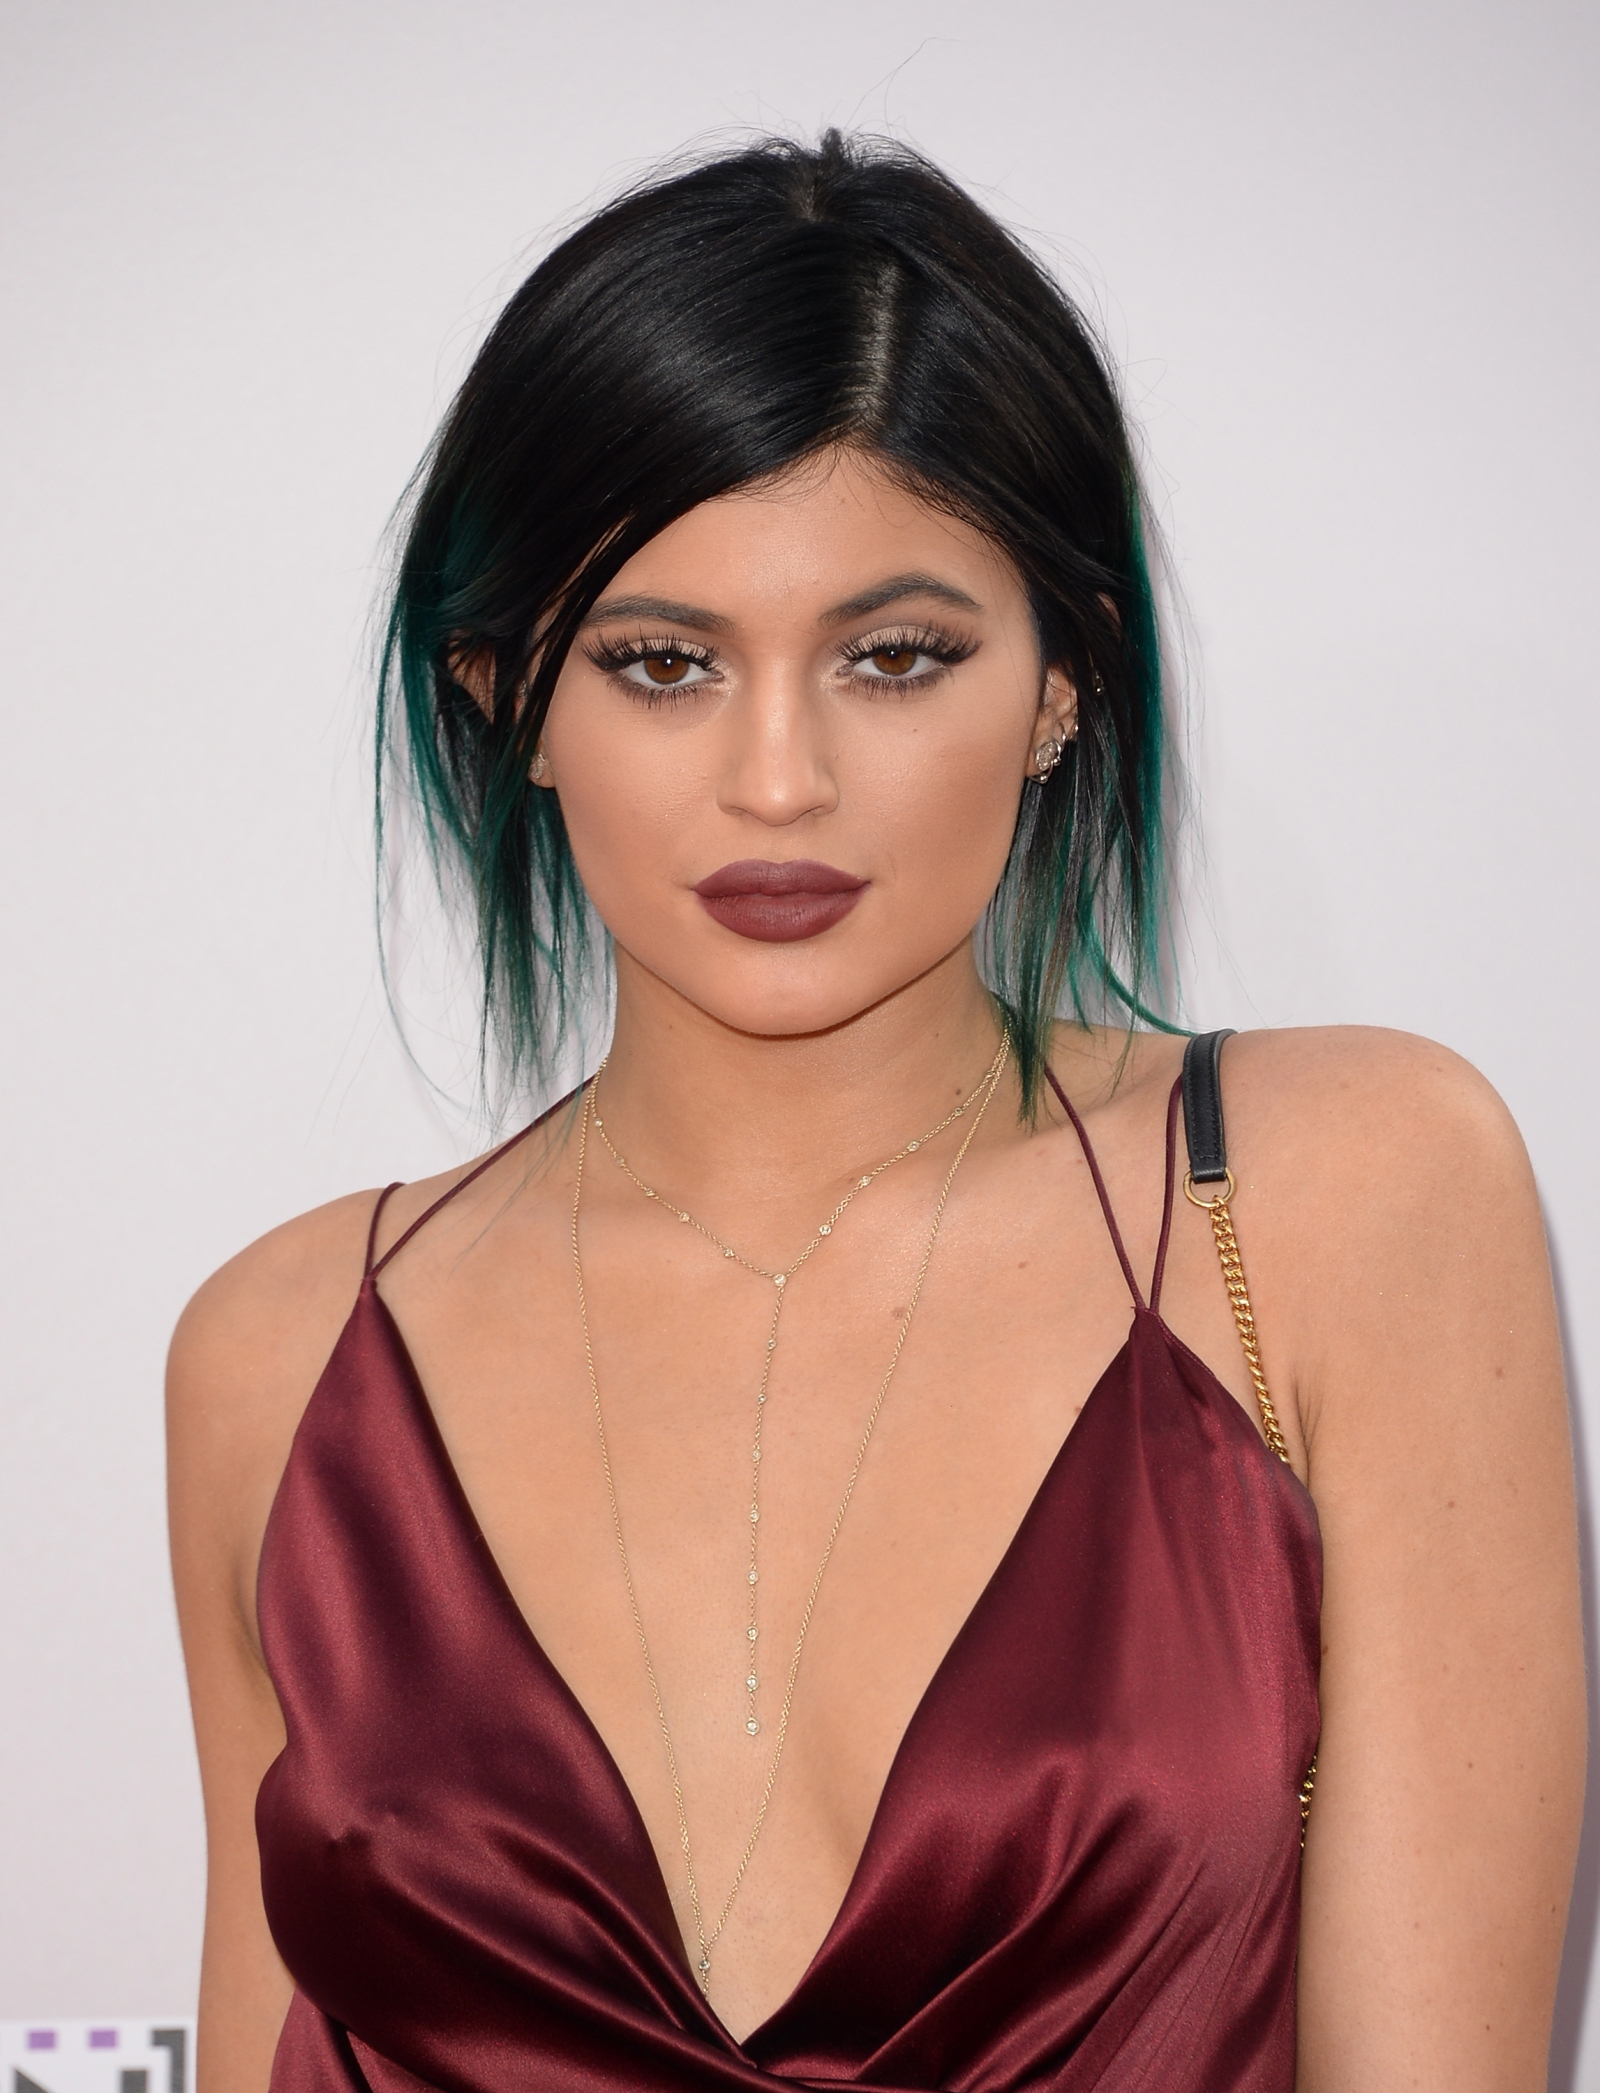 Kylie Jenner Arrives On The Red Carpet At Our Balmain X H: Kylie Jenner Bitterly Jealous Of Kendall Jenner's Career